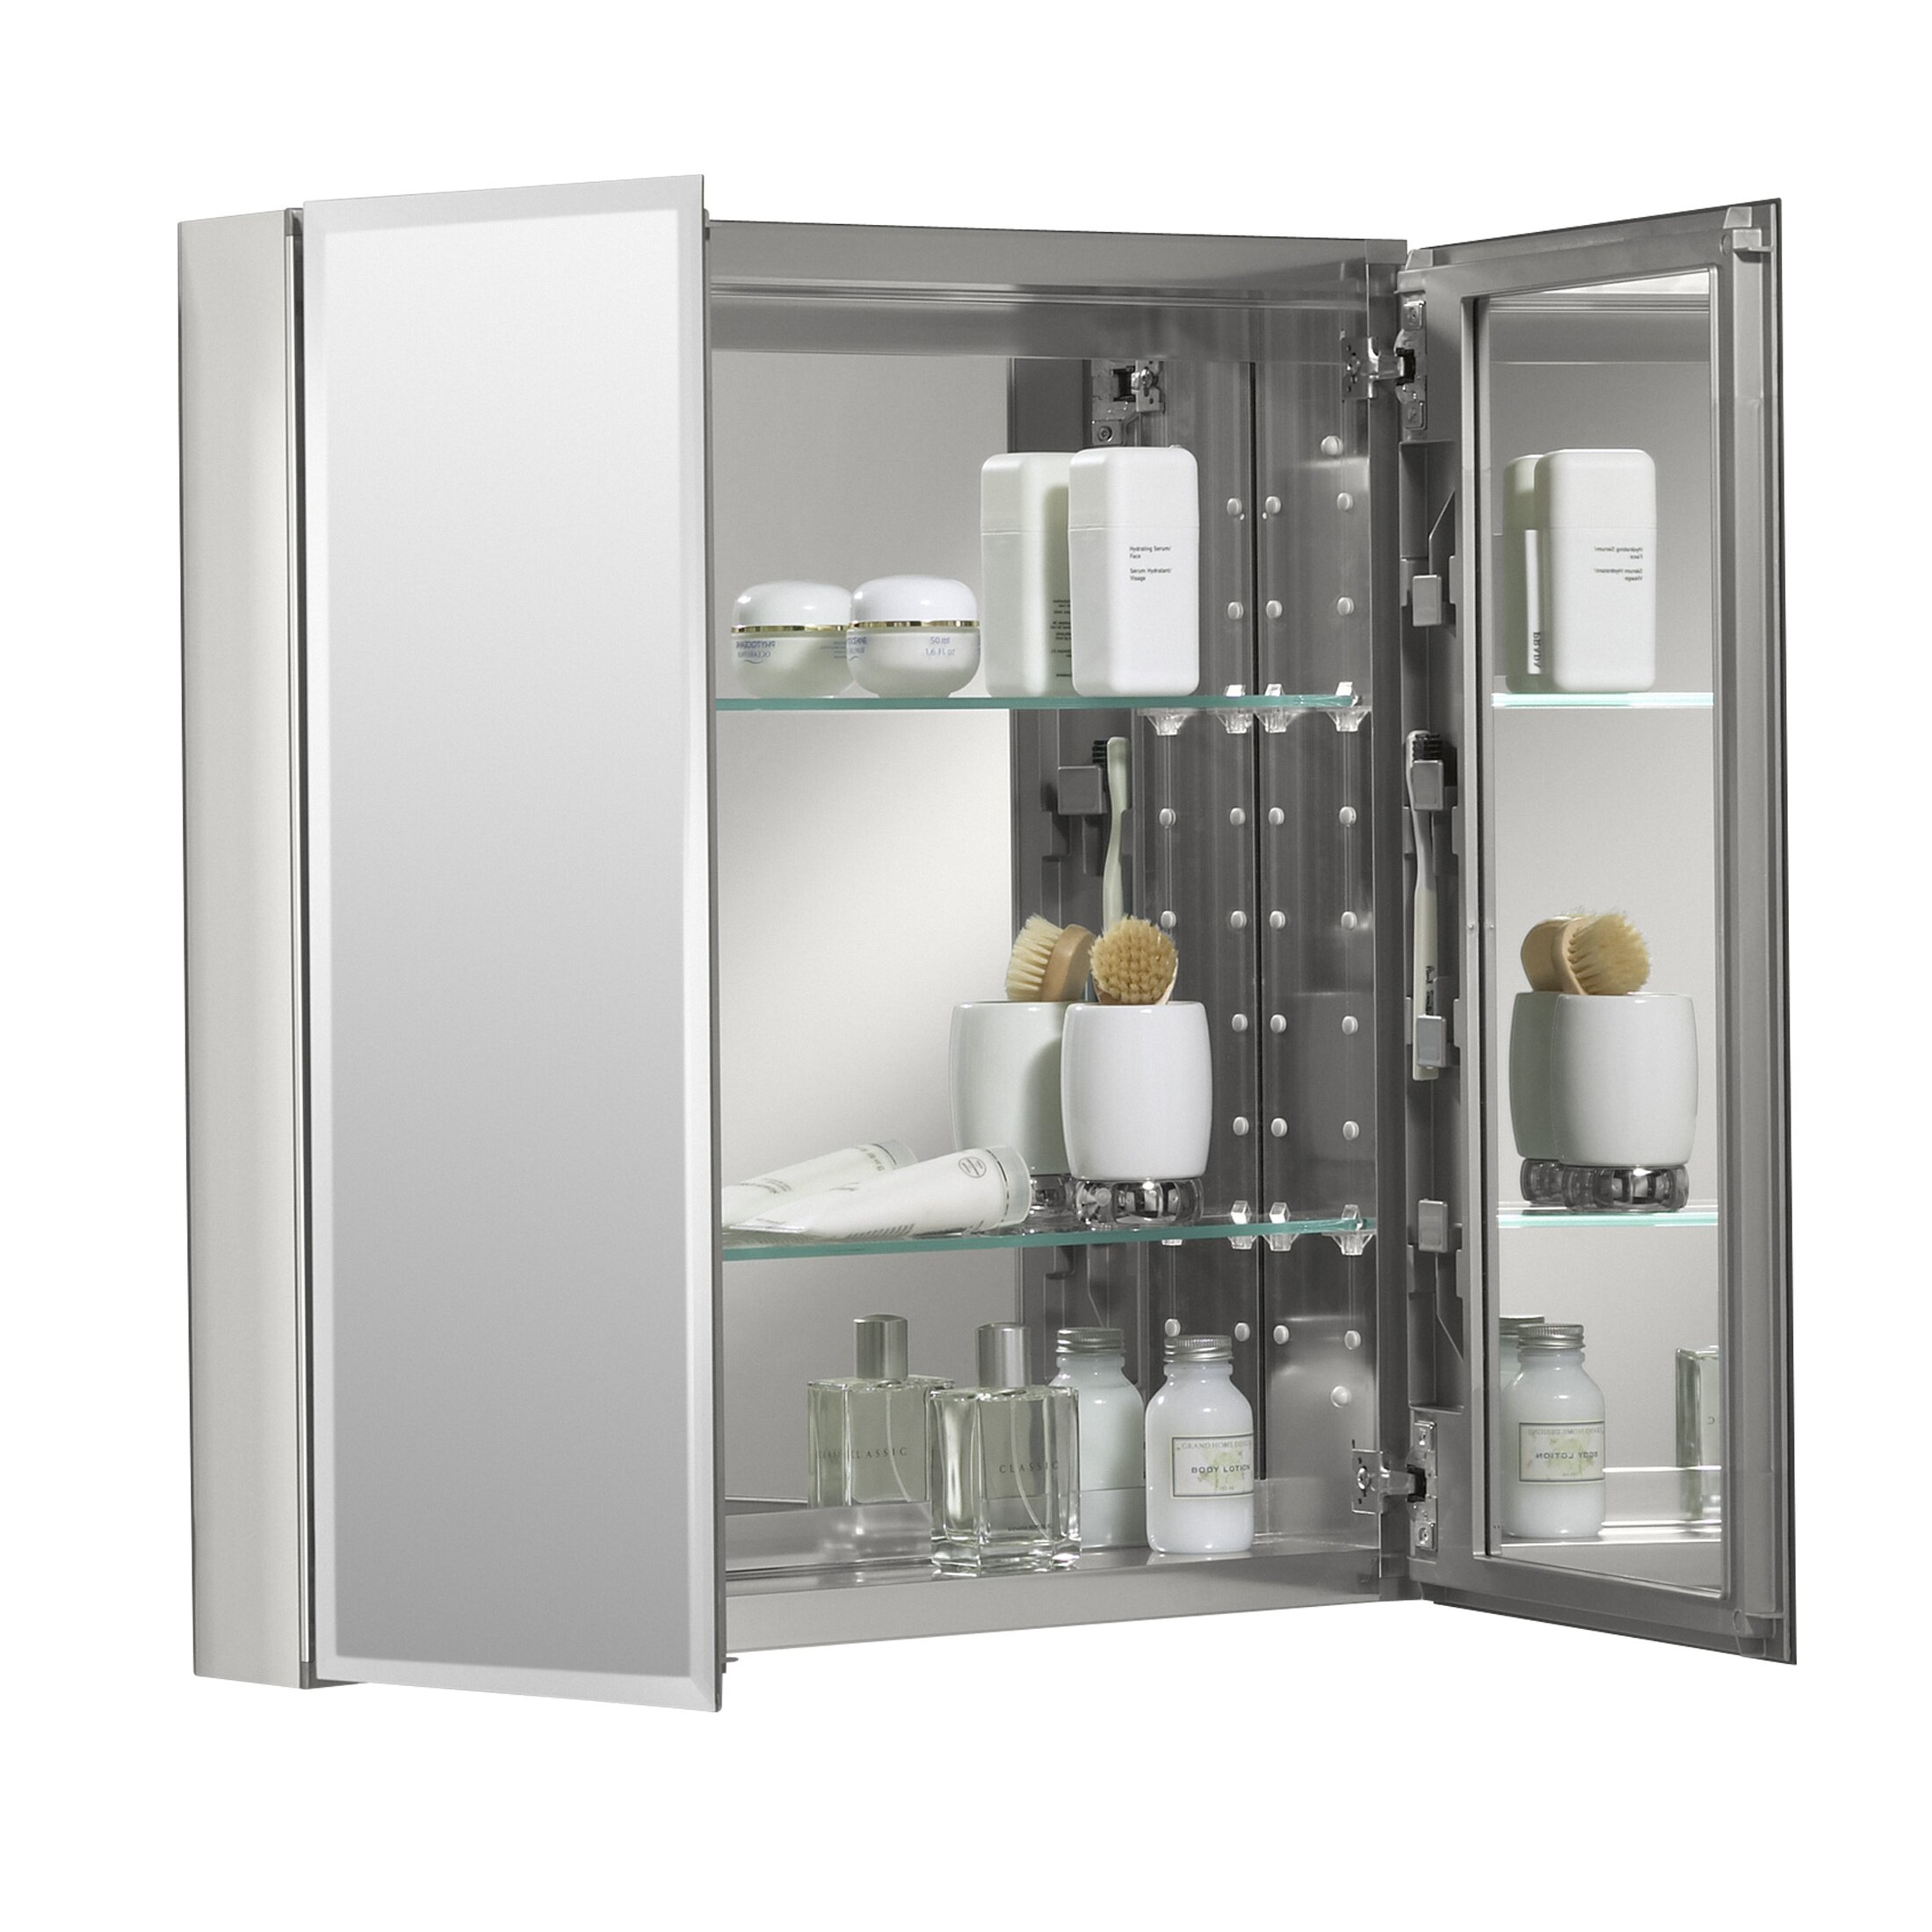 "Kohler 25"" X 26"" Aluminum Mirrored Medicine Cabinet & Reviews"